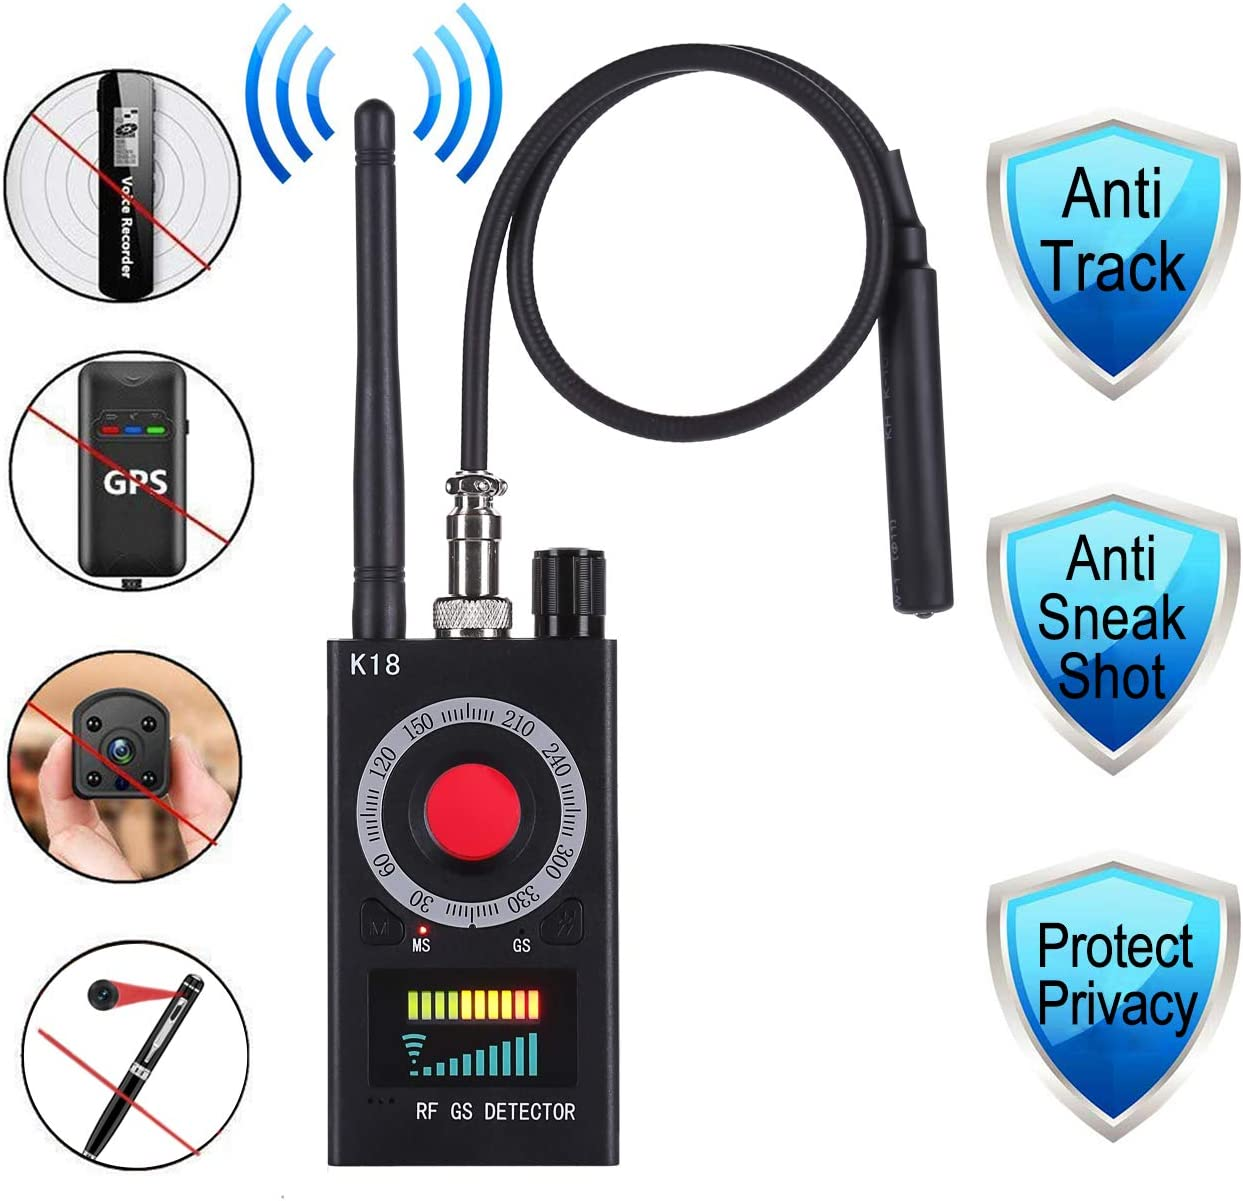 Anti Spy Detector RF Bug Detectors,Hiddem Camera Detectors Finders,Cellphone GPS Signal Bug Detectors,Listening Device Detector–Hotels,Homes,Life Safety